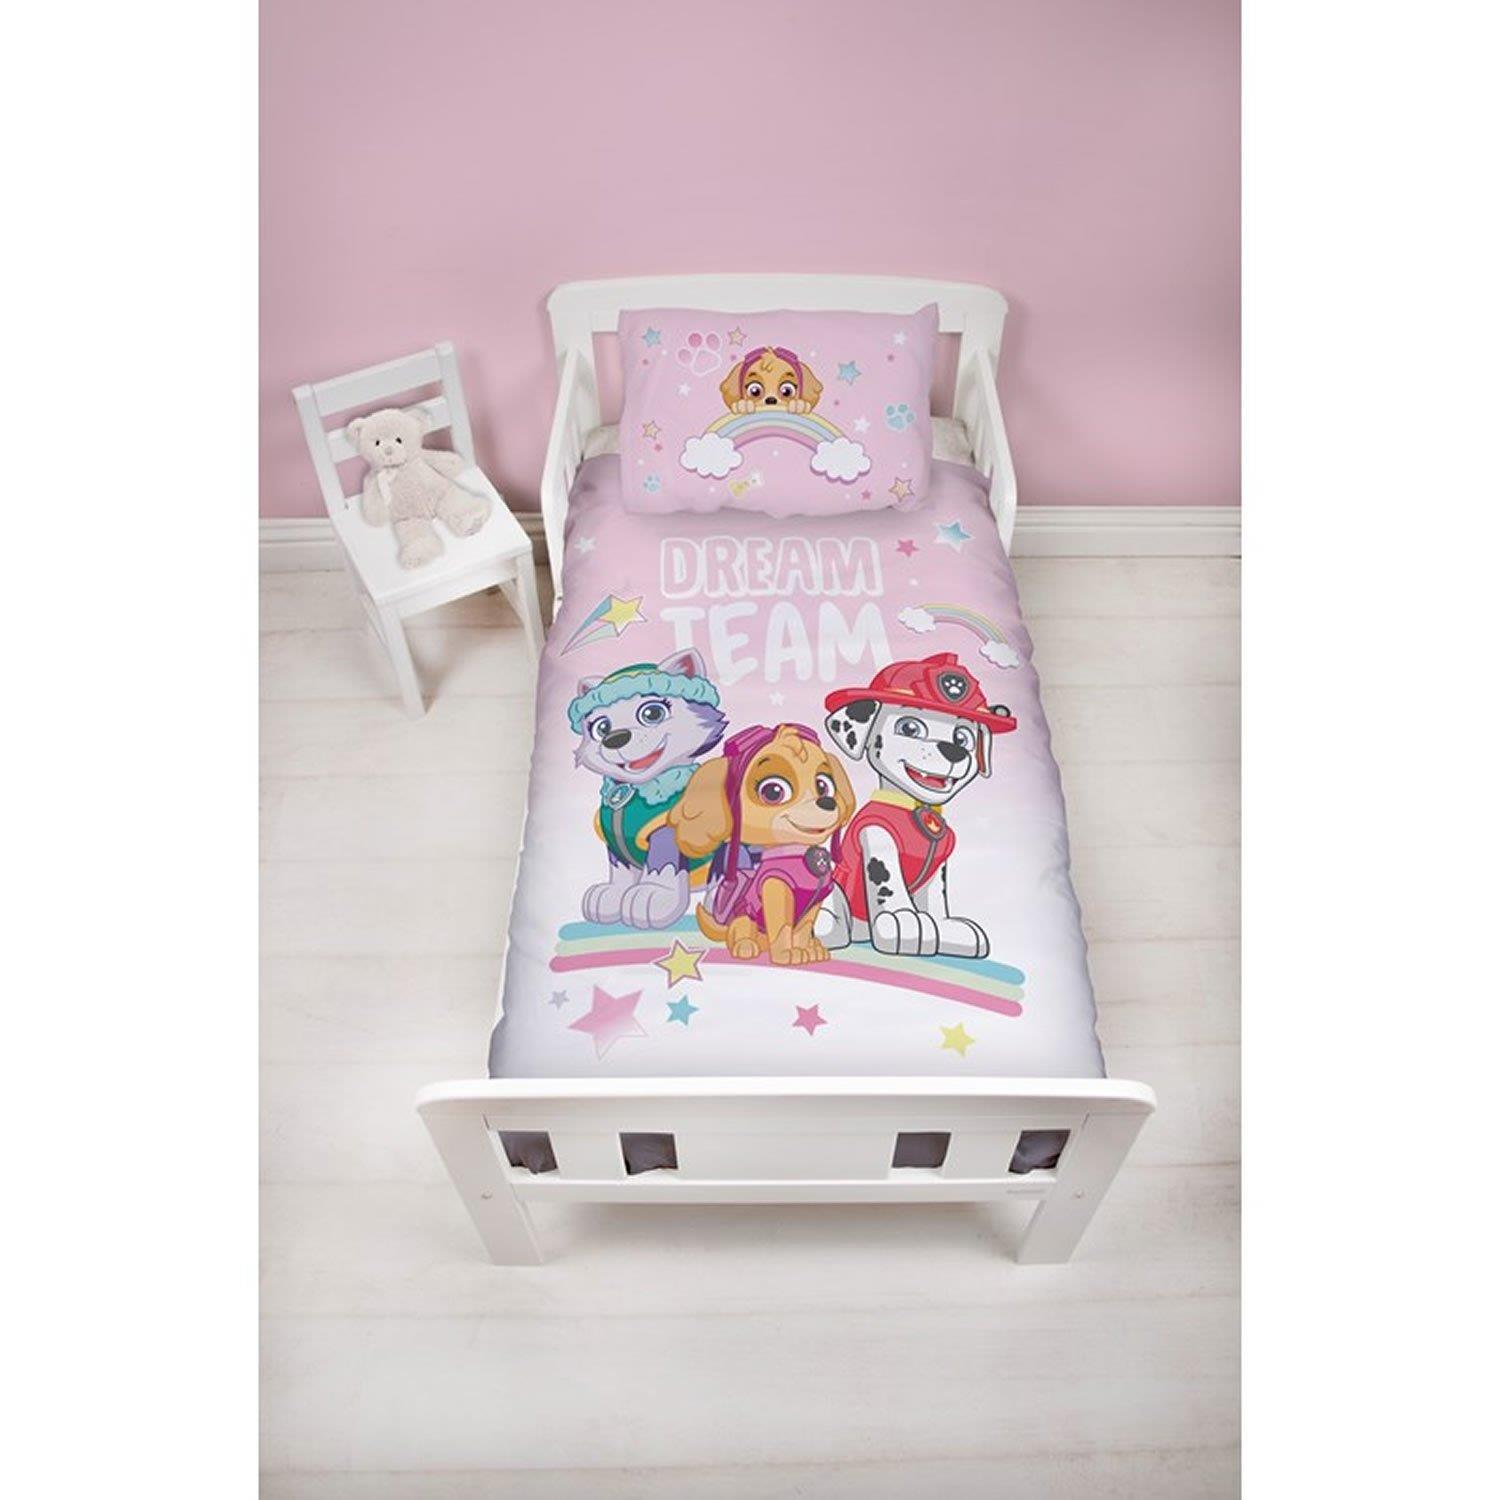 Official-Paw-Patrol-Licensed-Duvet-Covers-Single-Double-Chase-Skye-Marshall thumbnail 19